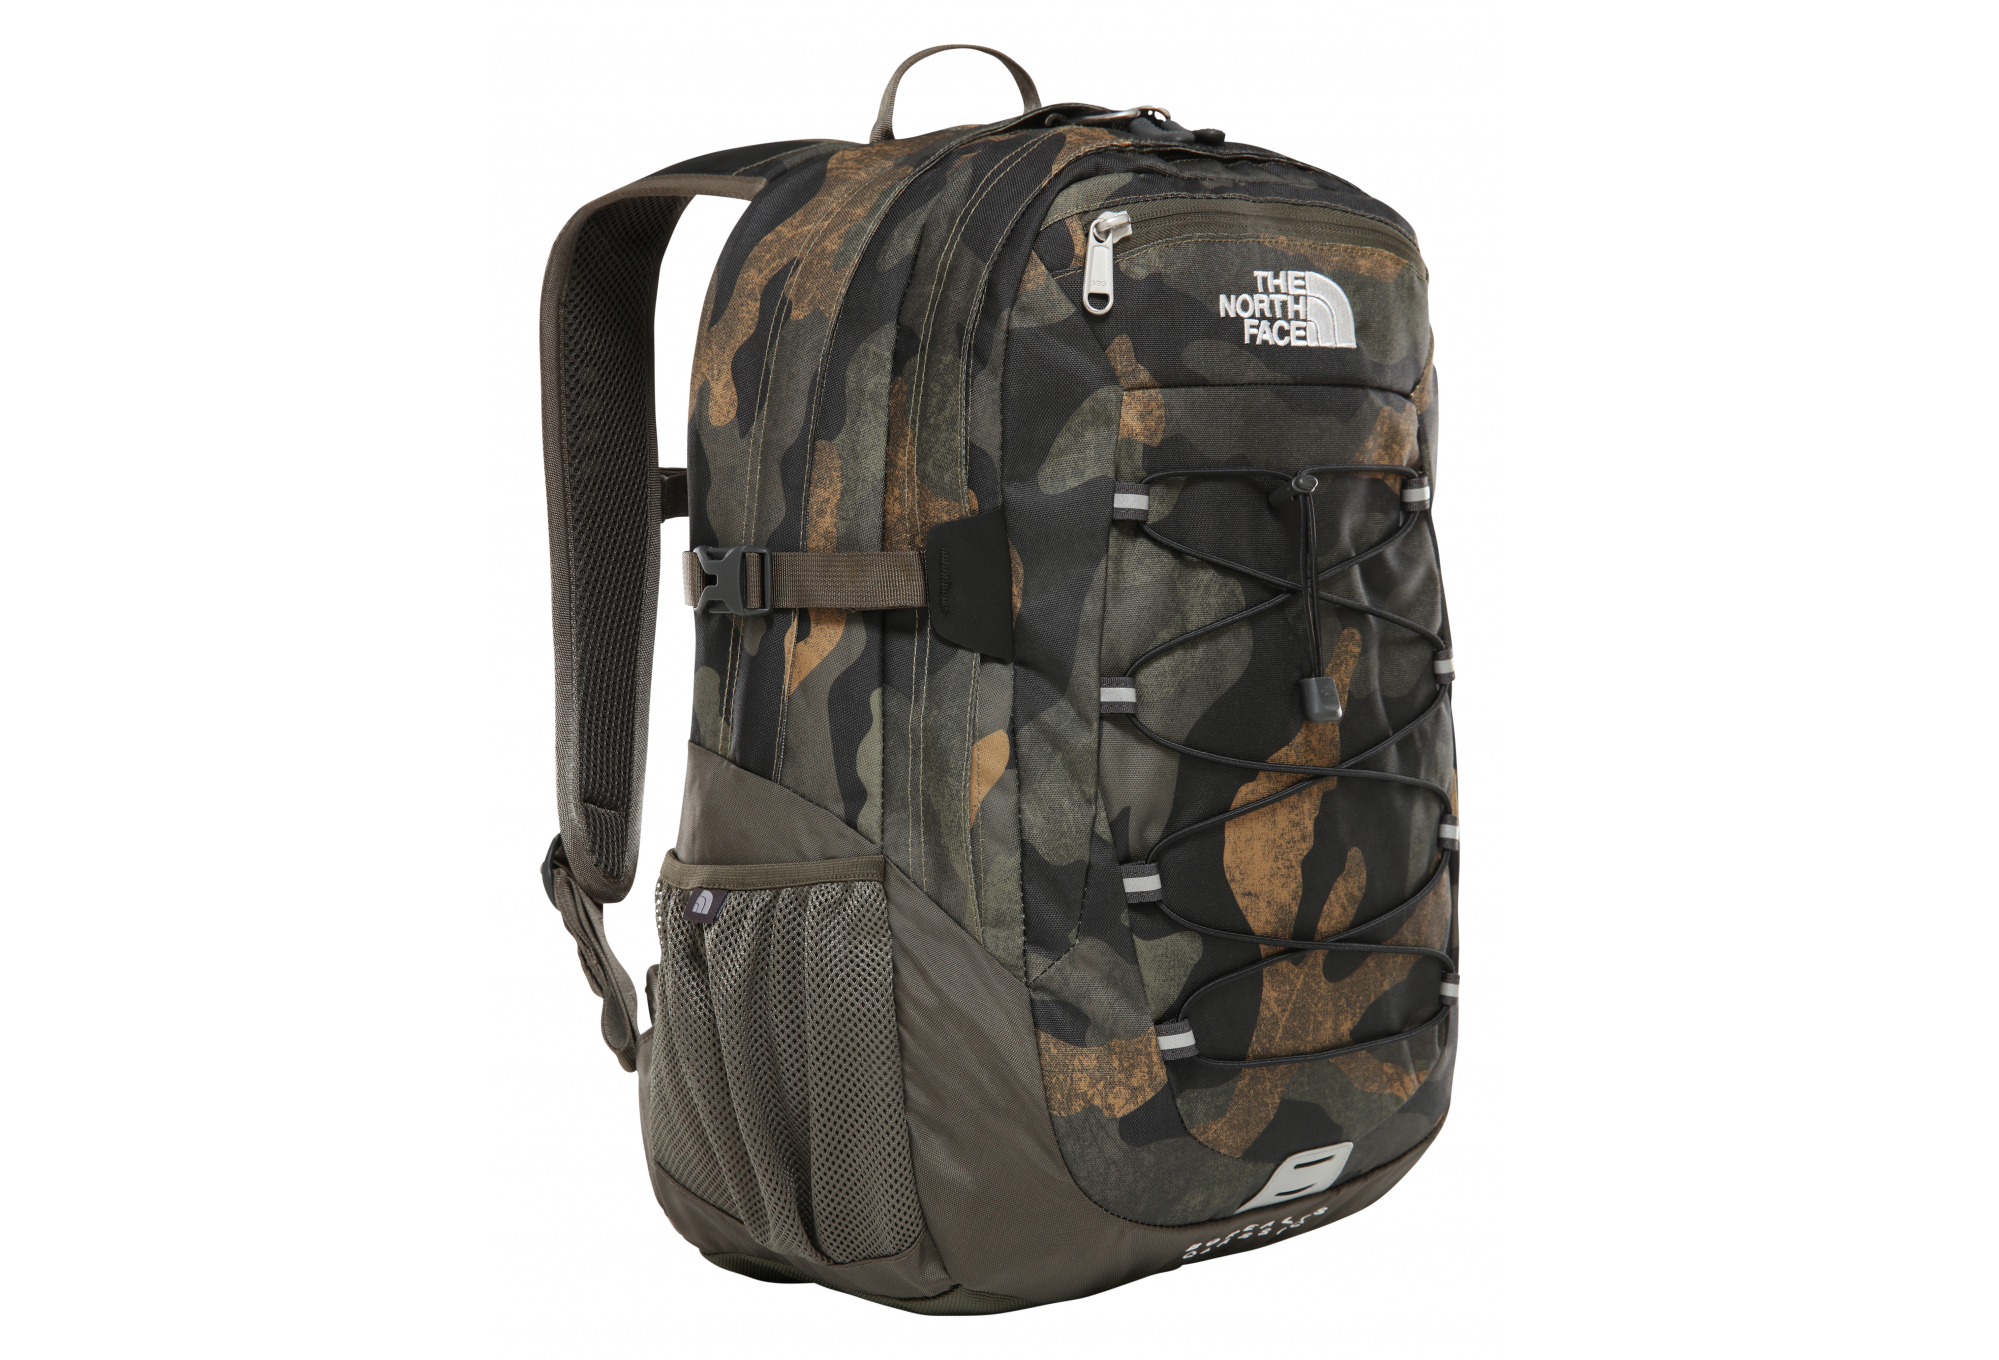 The North Face Borealis Classic Zaino Camo Verde oliva